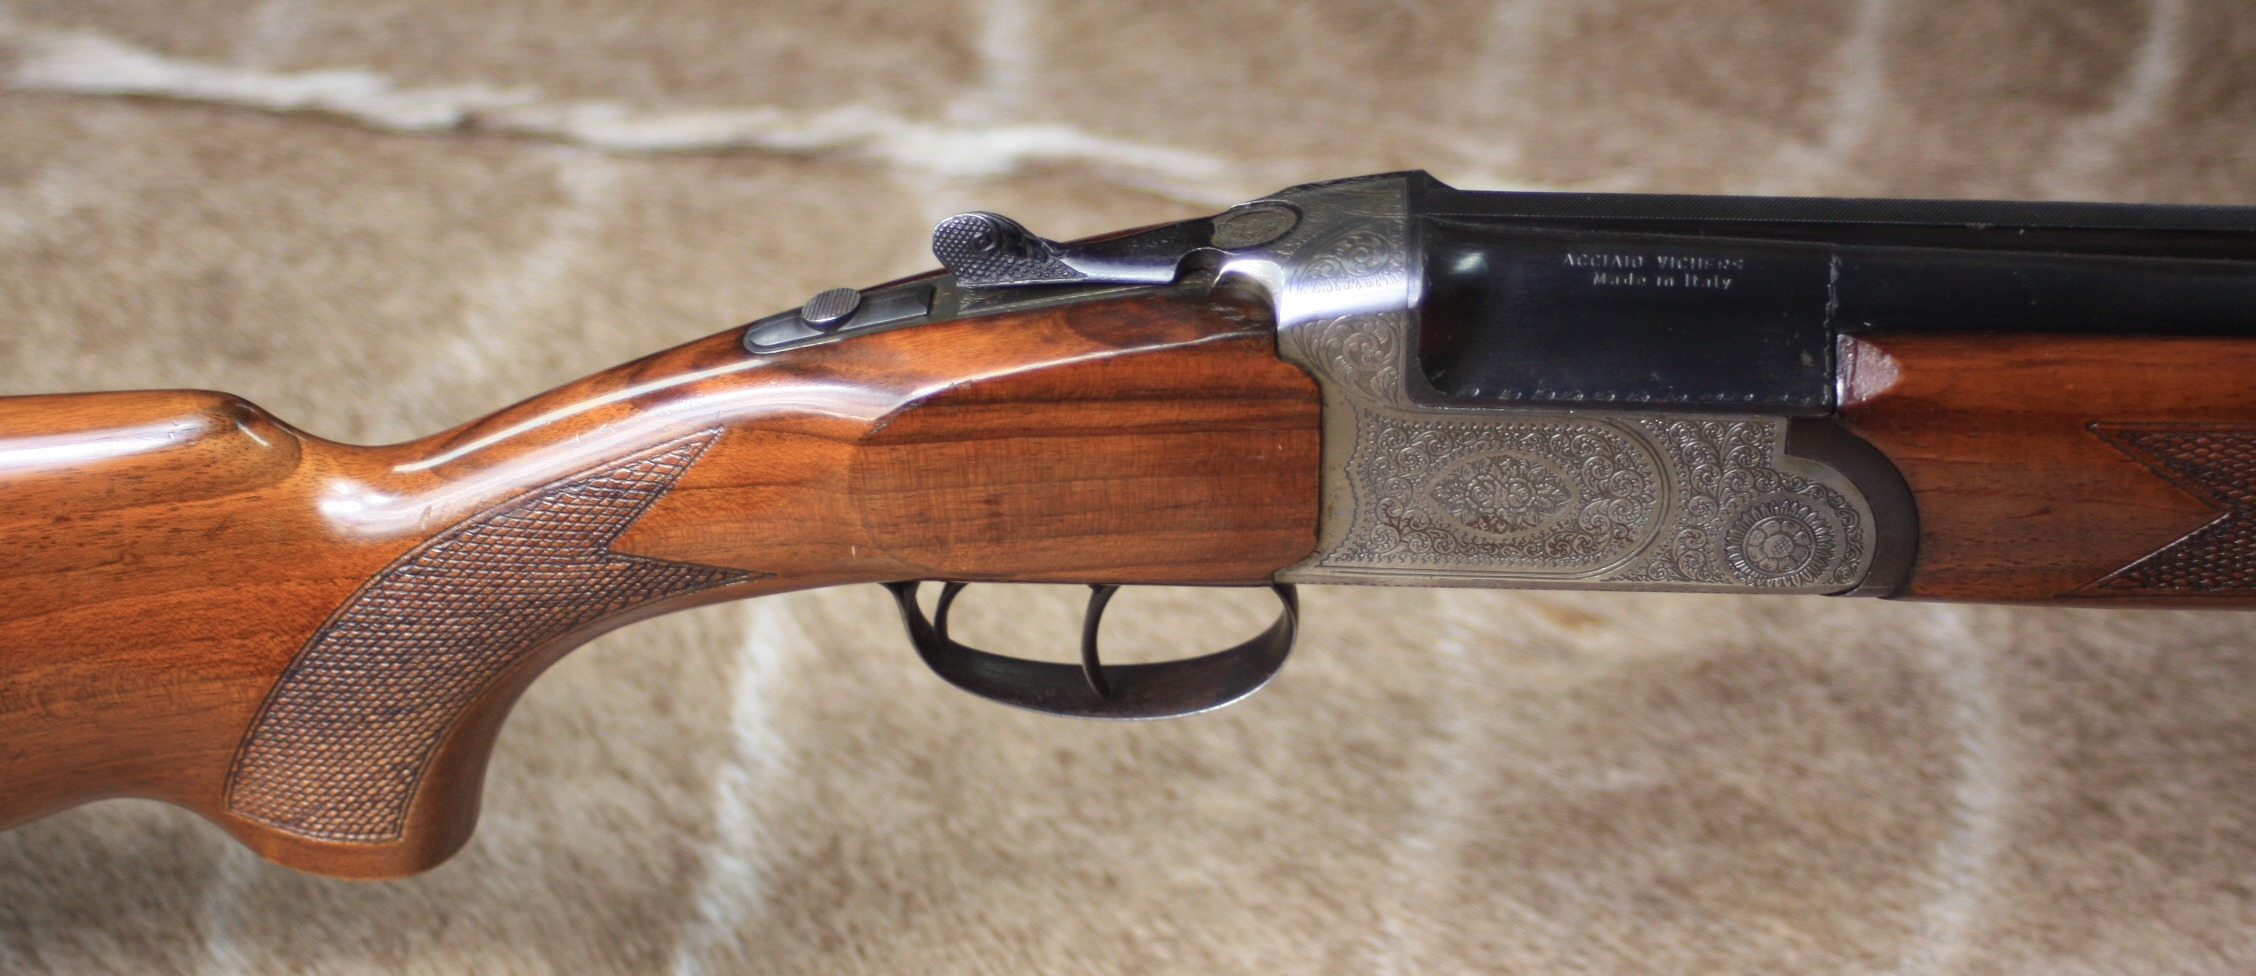 ITALIAN 12-BORE DOUBLE-TRIGGER OVER AND UNDER NON-EJECTOR